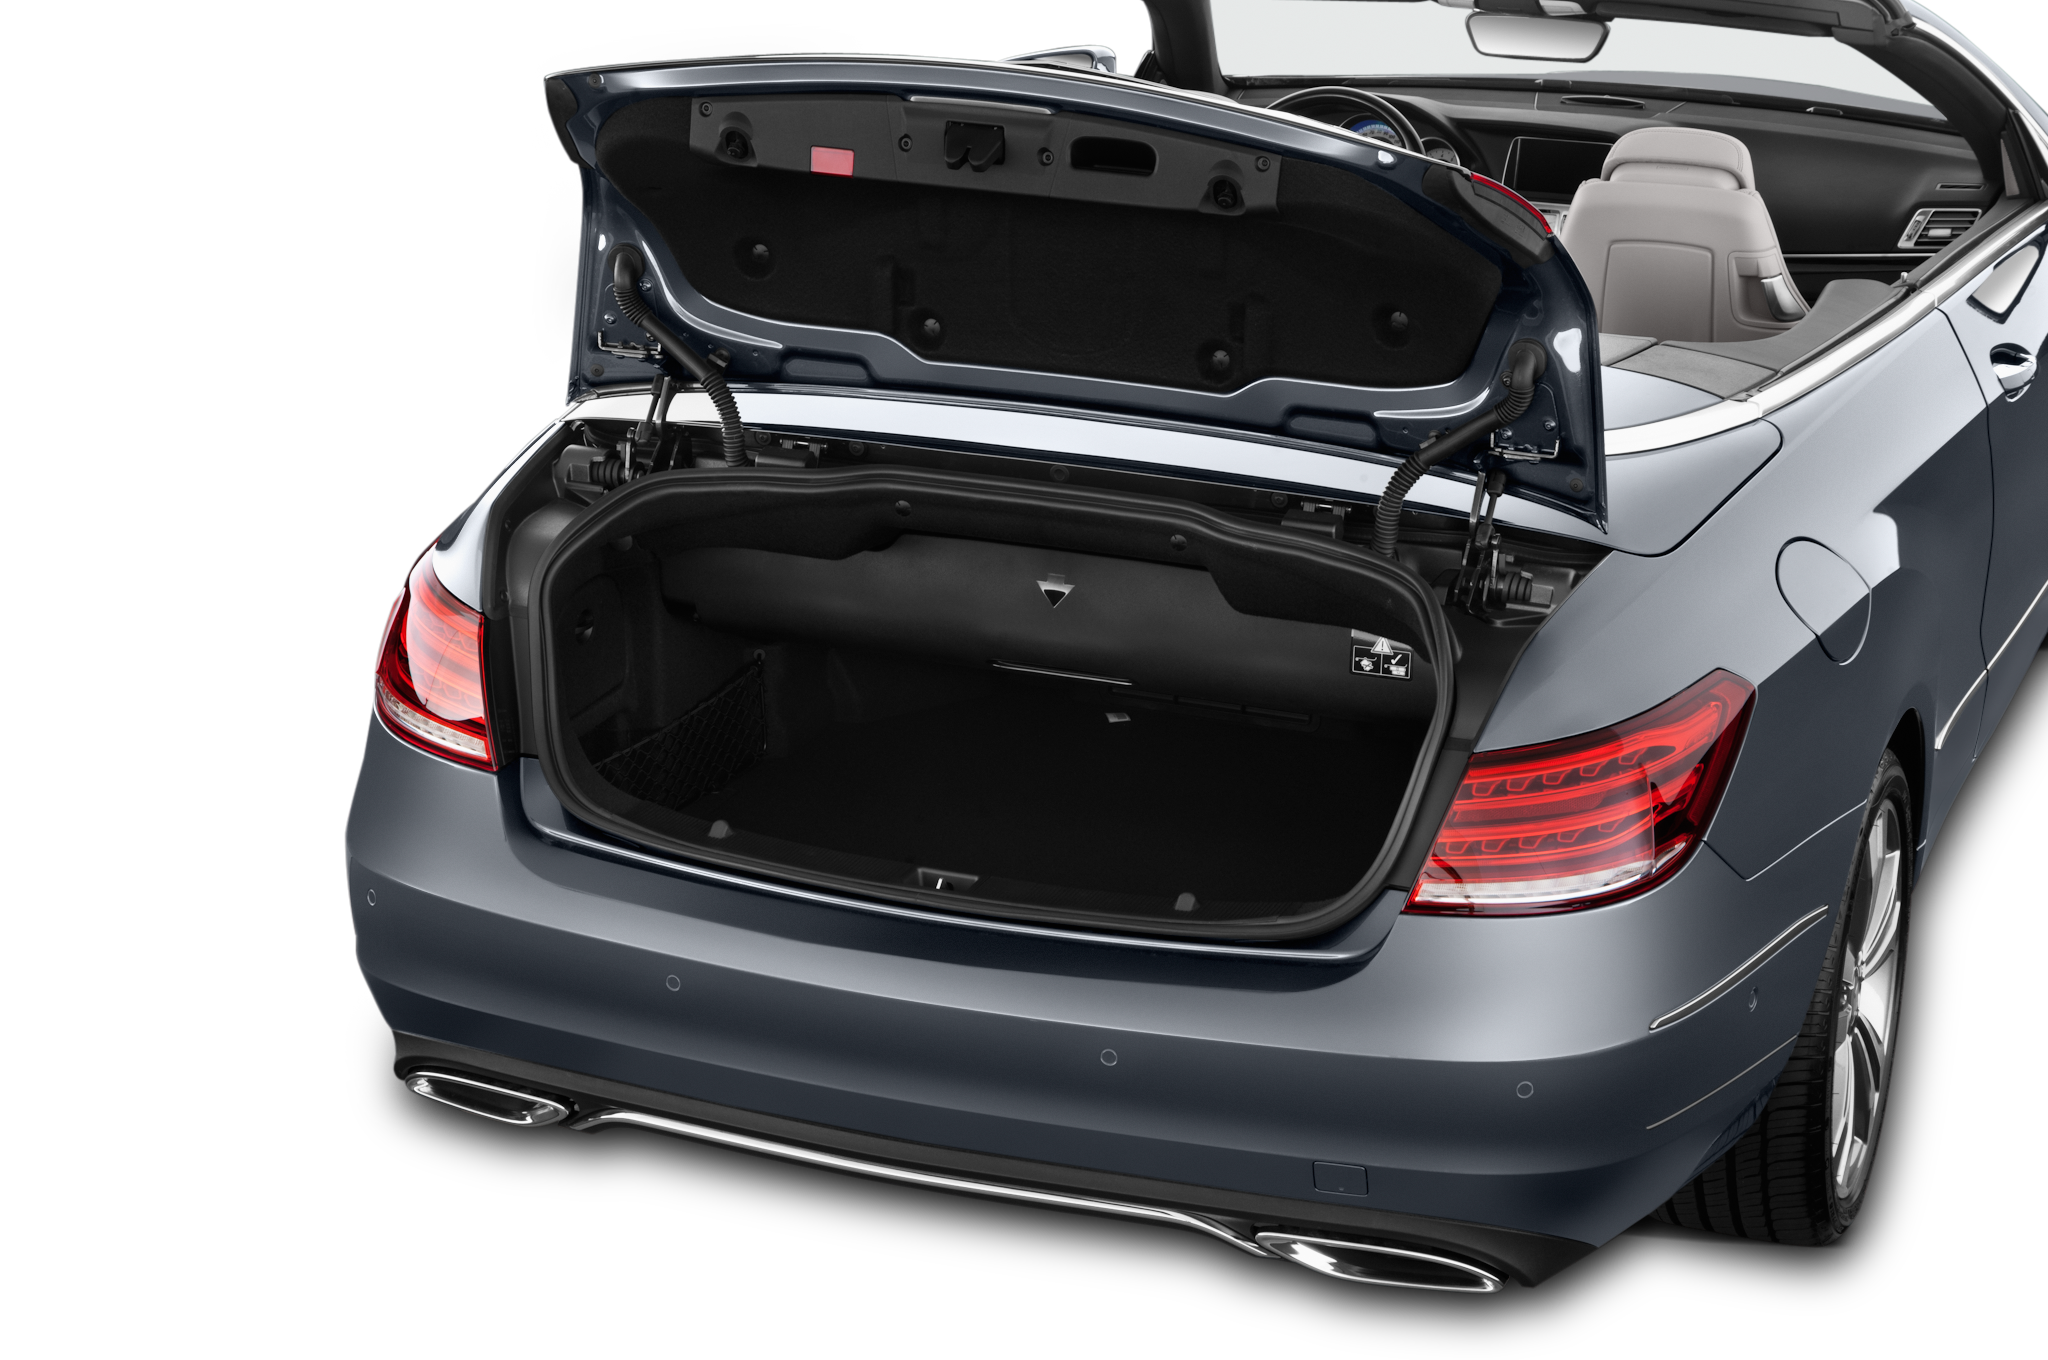 2017 mercedes ben e400 4matic wagon one week review for How to open the trunk of a mercedes benz e320